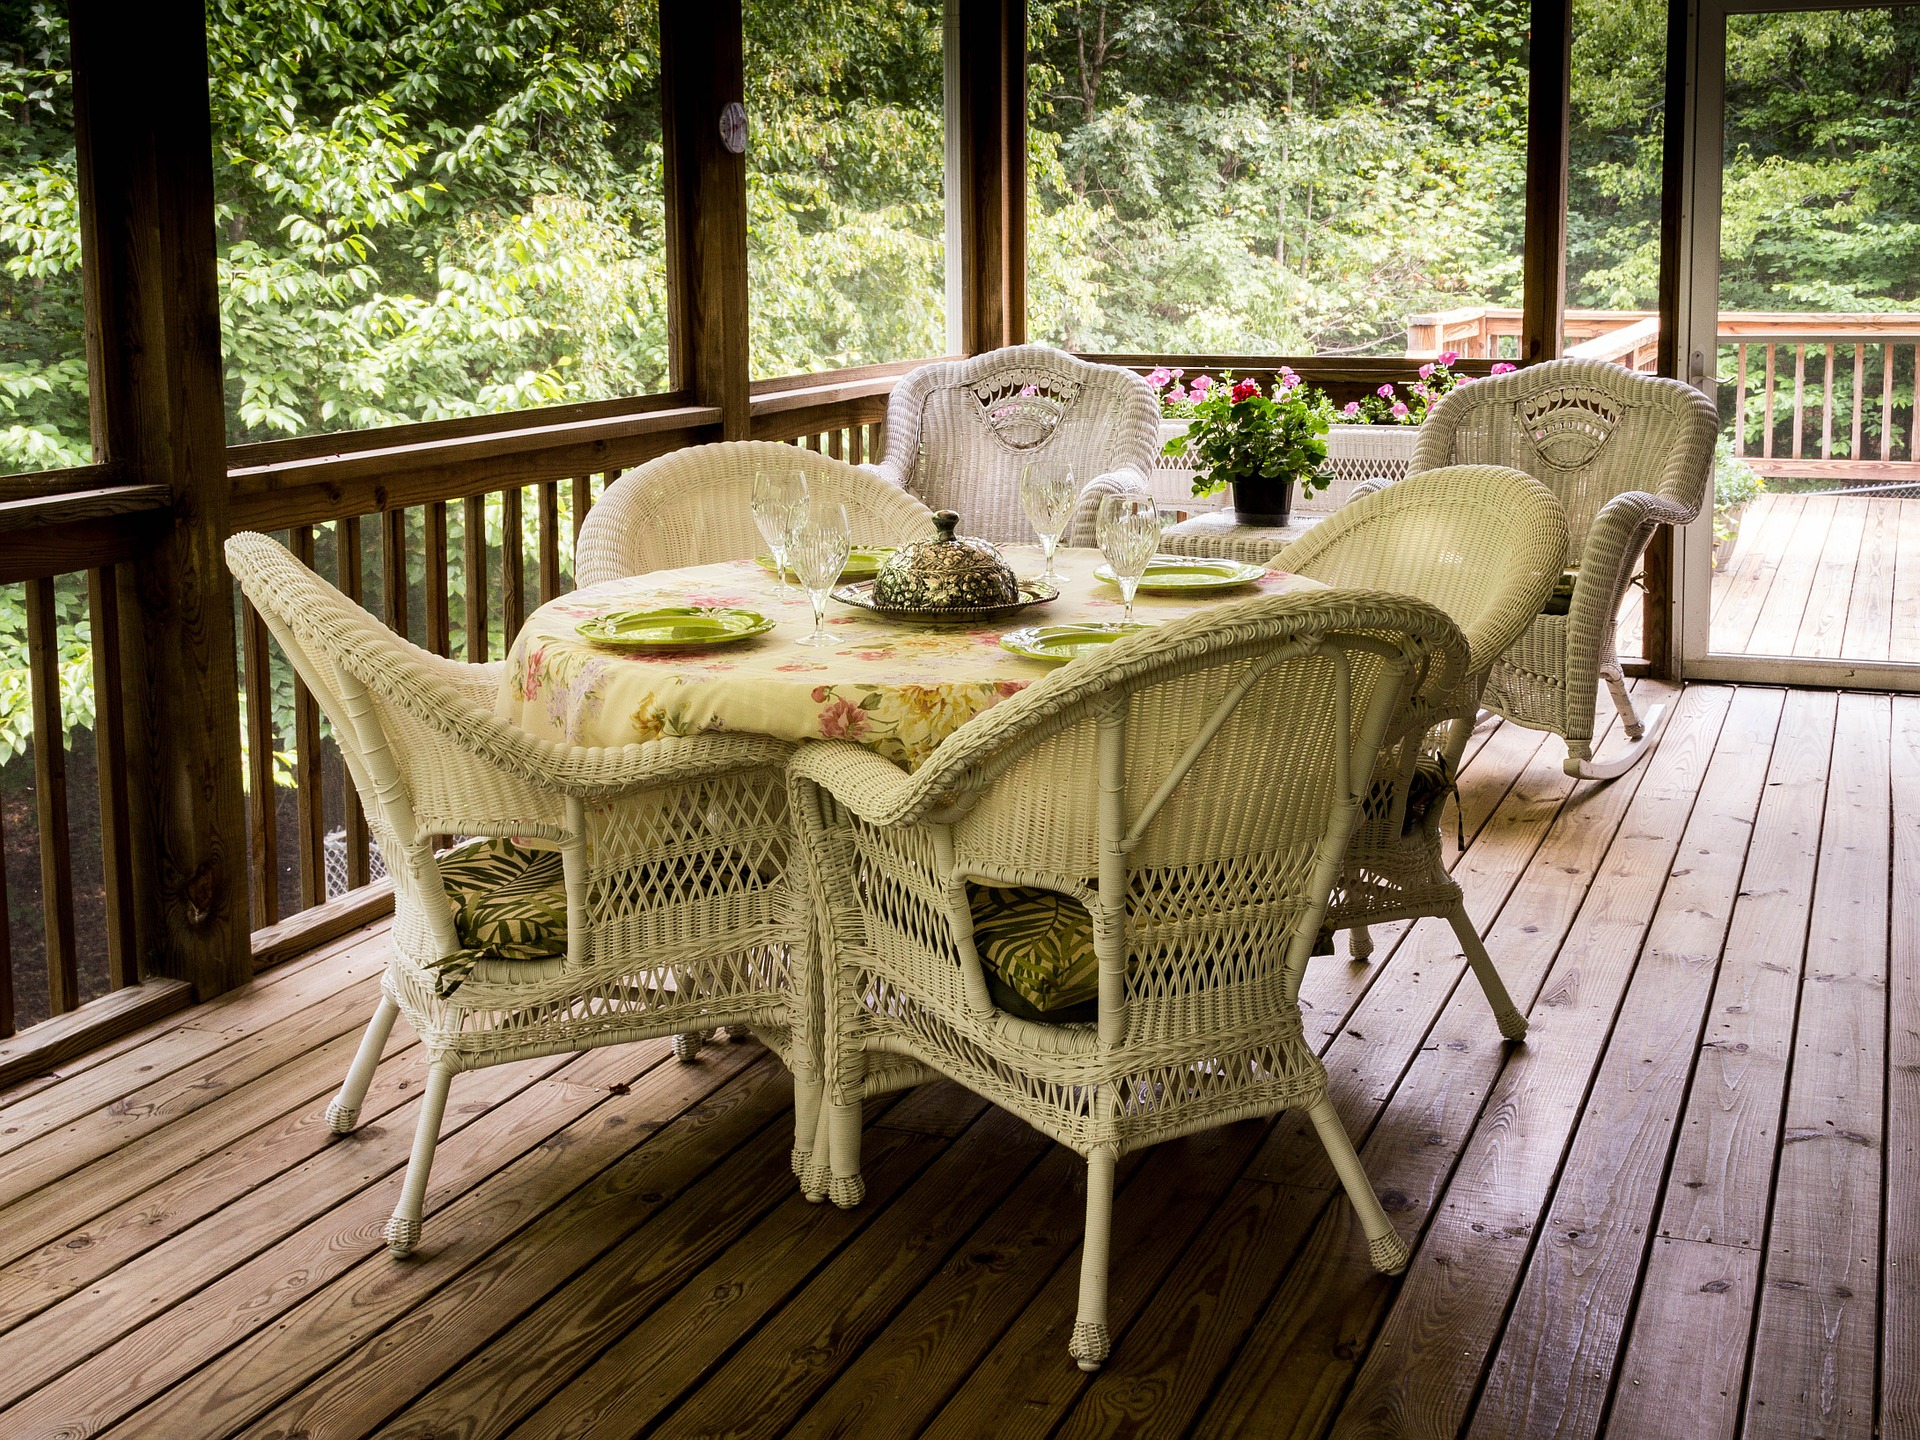 Keeping Your Deck Scratch Free North American Deck And Patio intended for dimensions 1920 X 1440